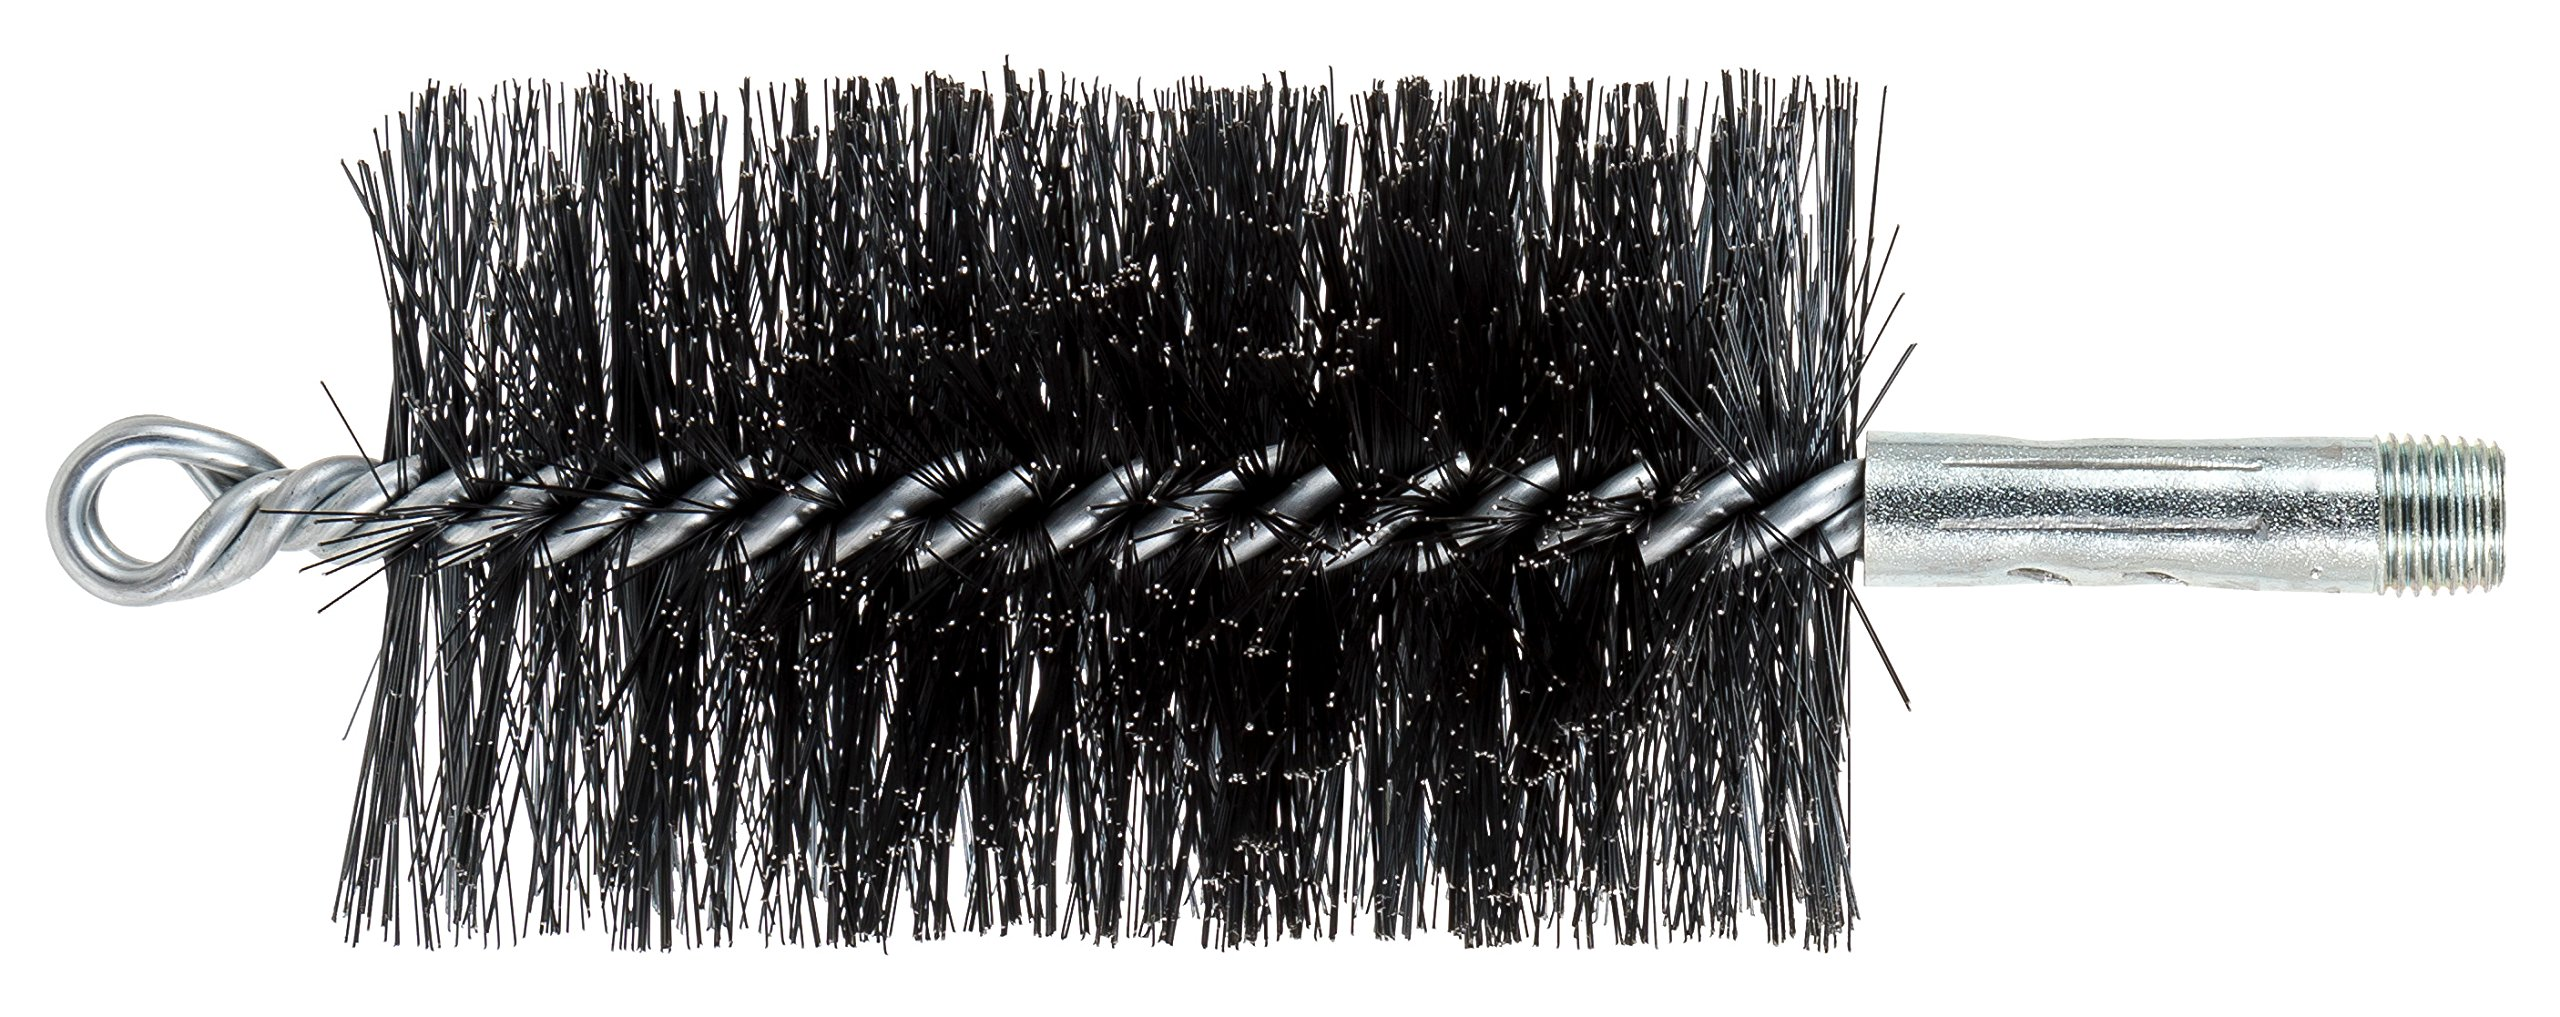 PFERD 89658 3'' Double Spiral Flue Brush, 0.012 Carbon Steel, 4-1/2'' Brush Part Length, 2-3/4'' OD